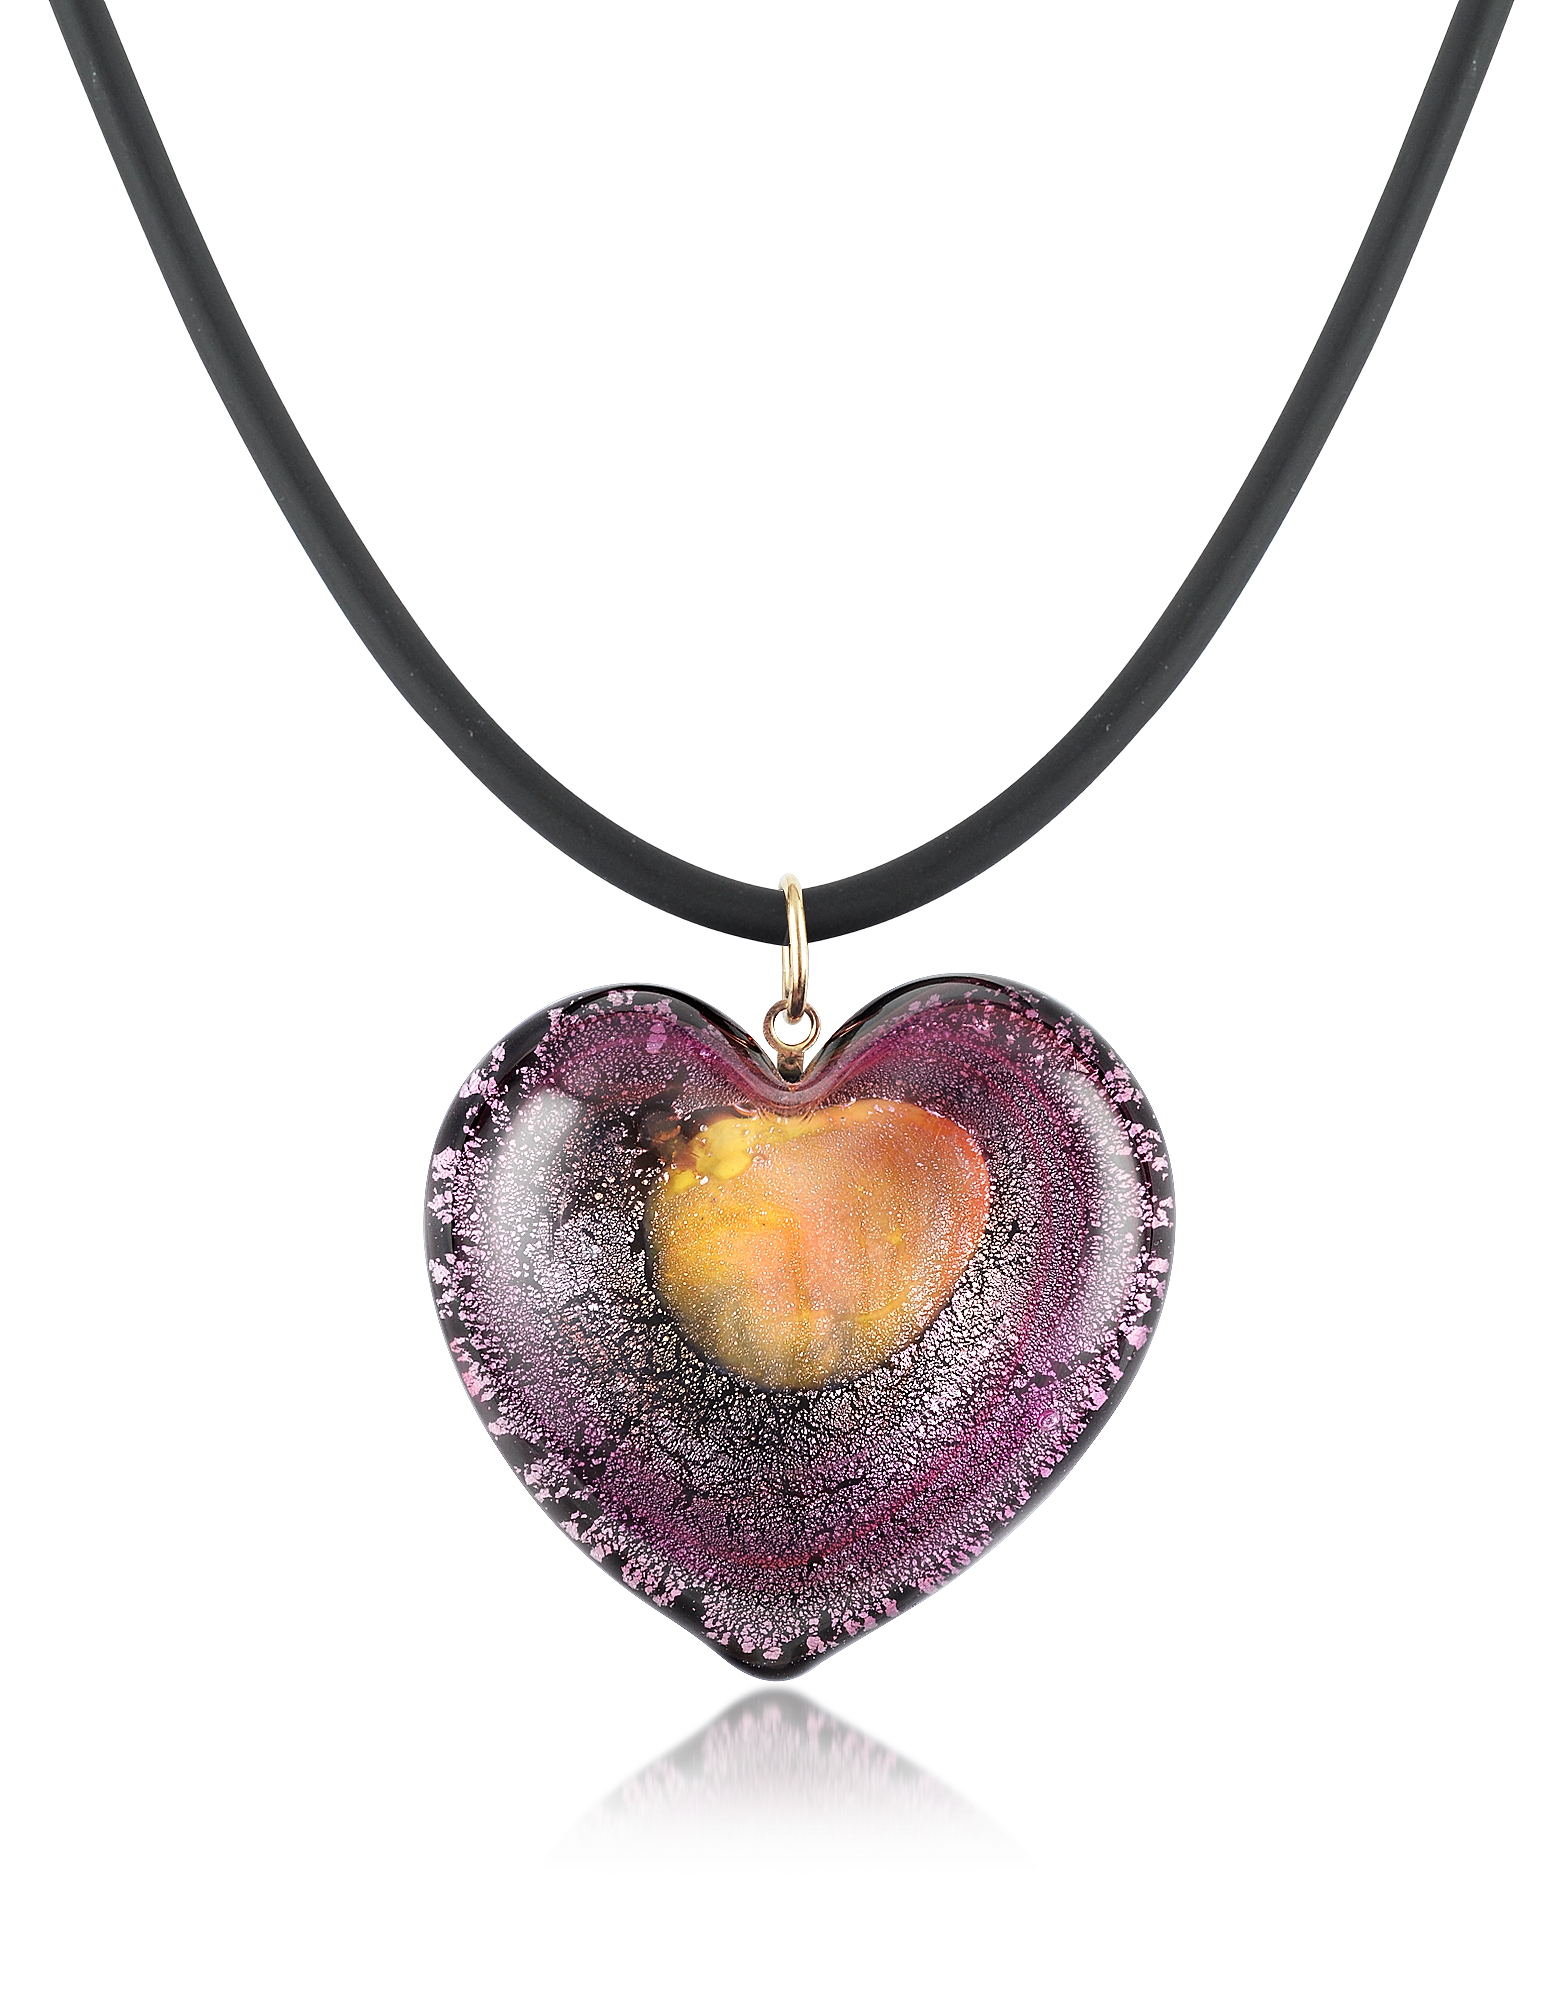 Akuamarina Necklaces, Silver Leaf and Murano Glass Heart Pendant Necklace